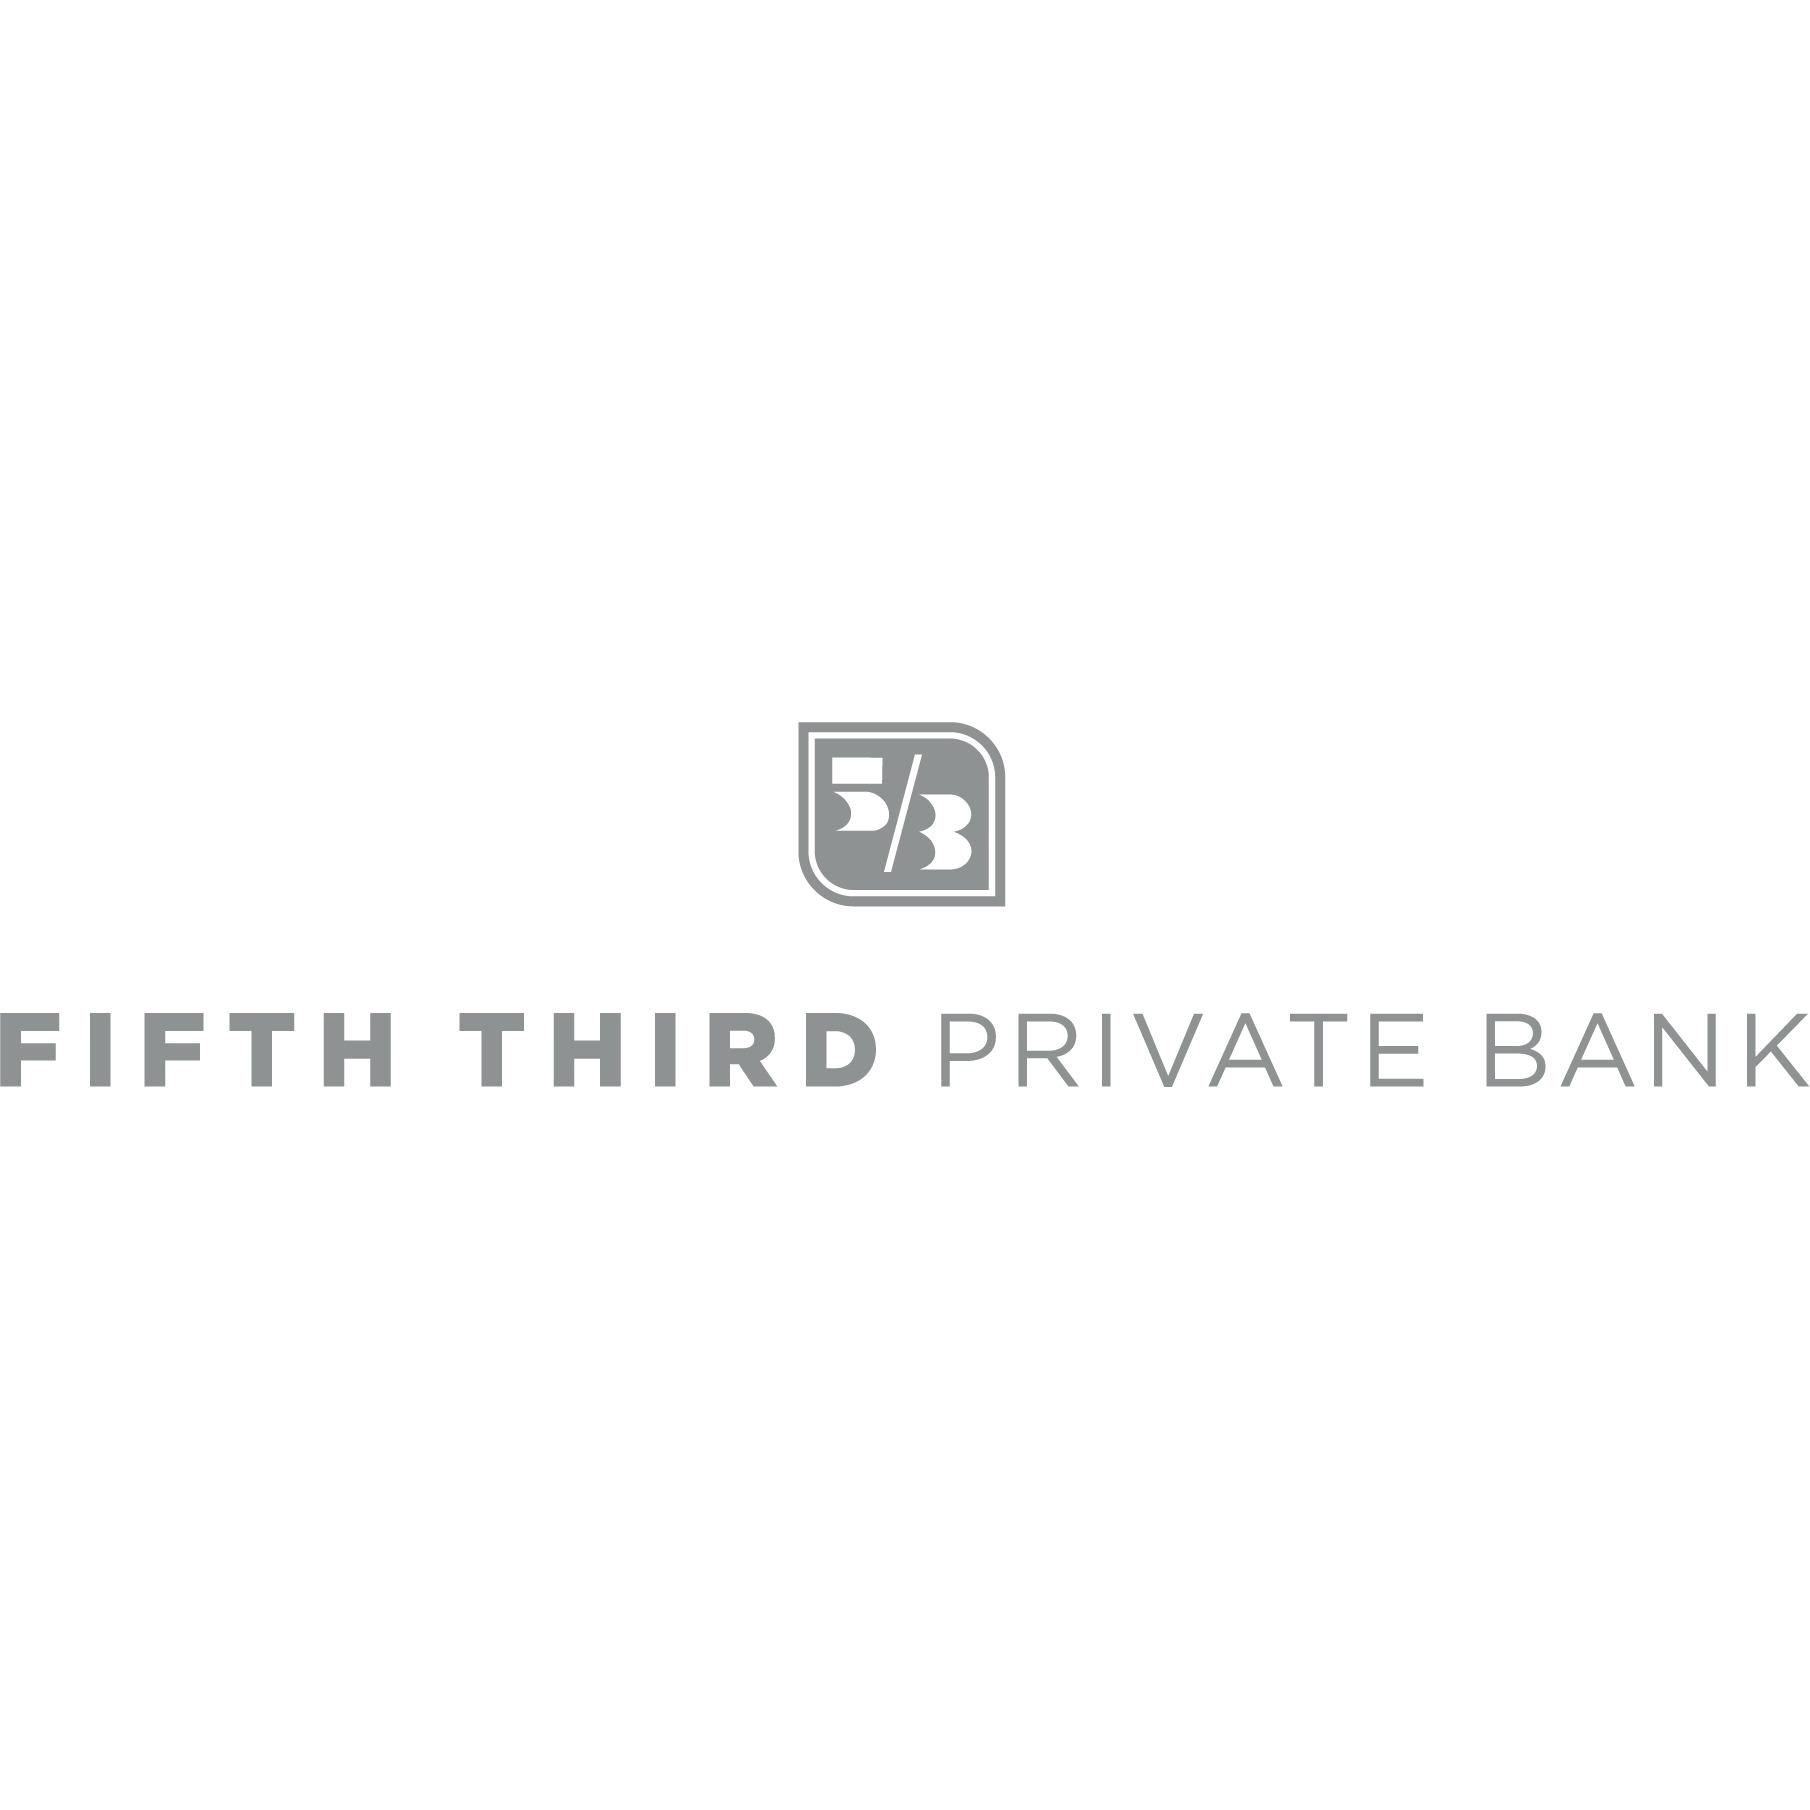 Fifth Third Private Bank - Kevin Huebschman